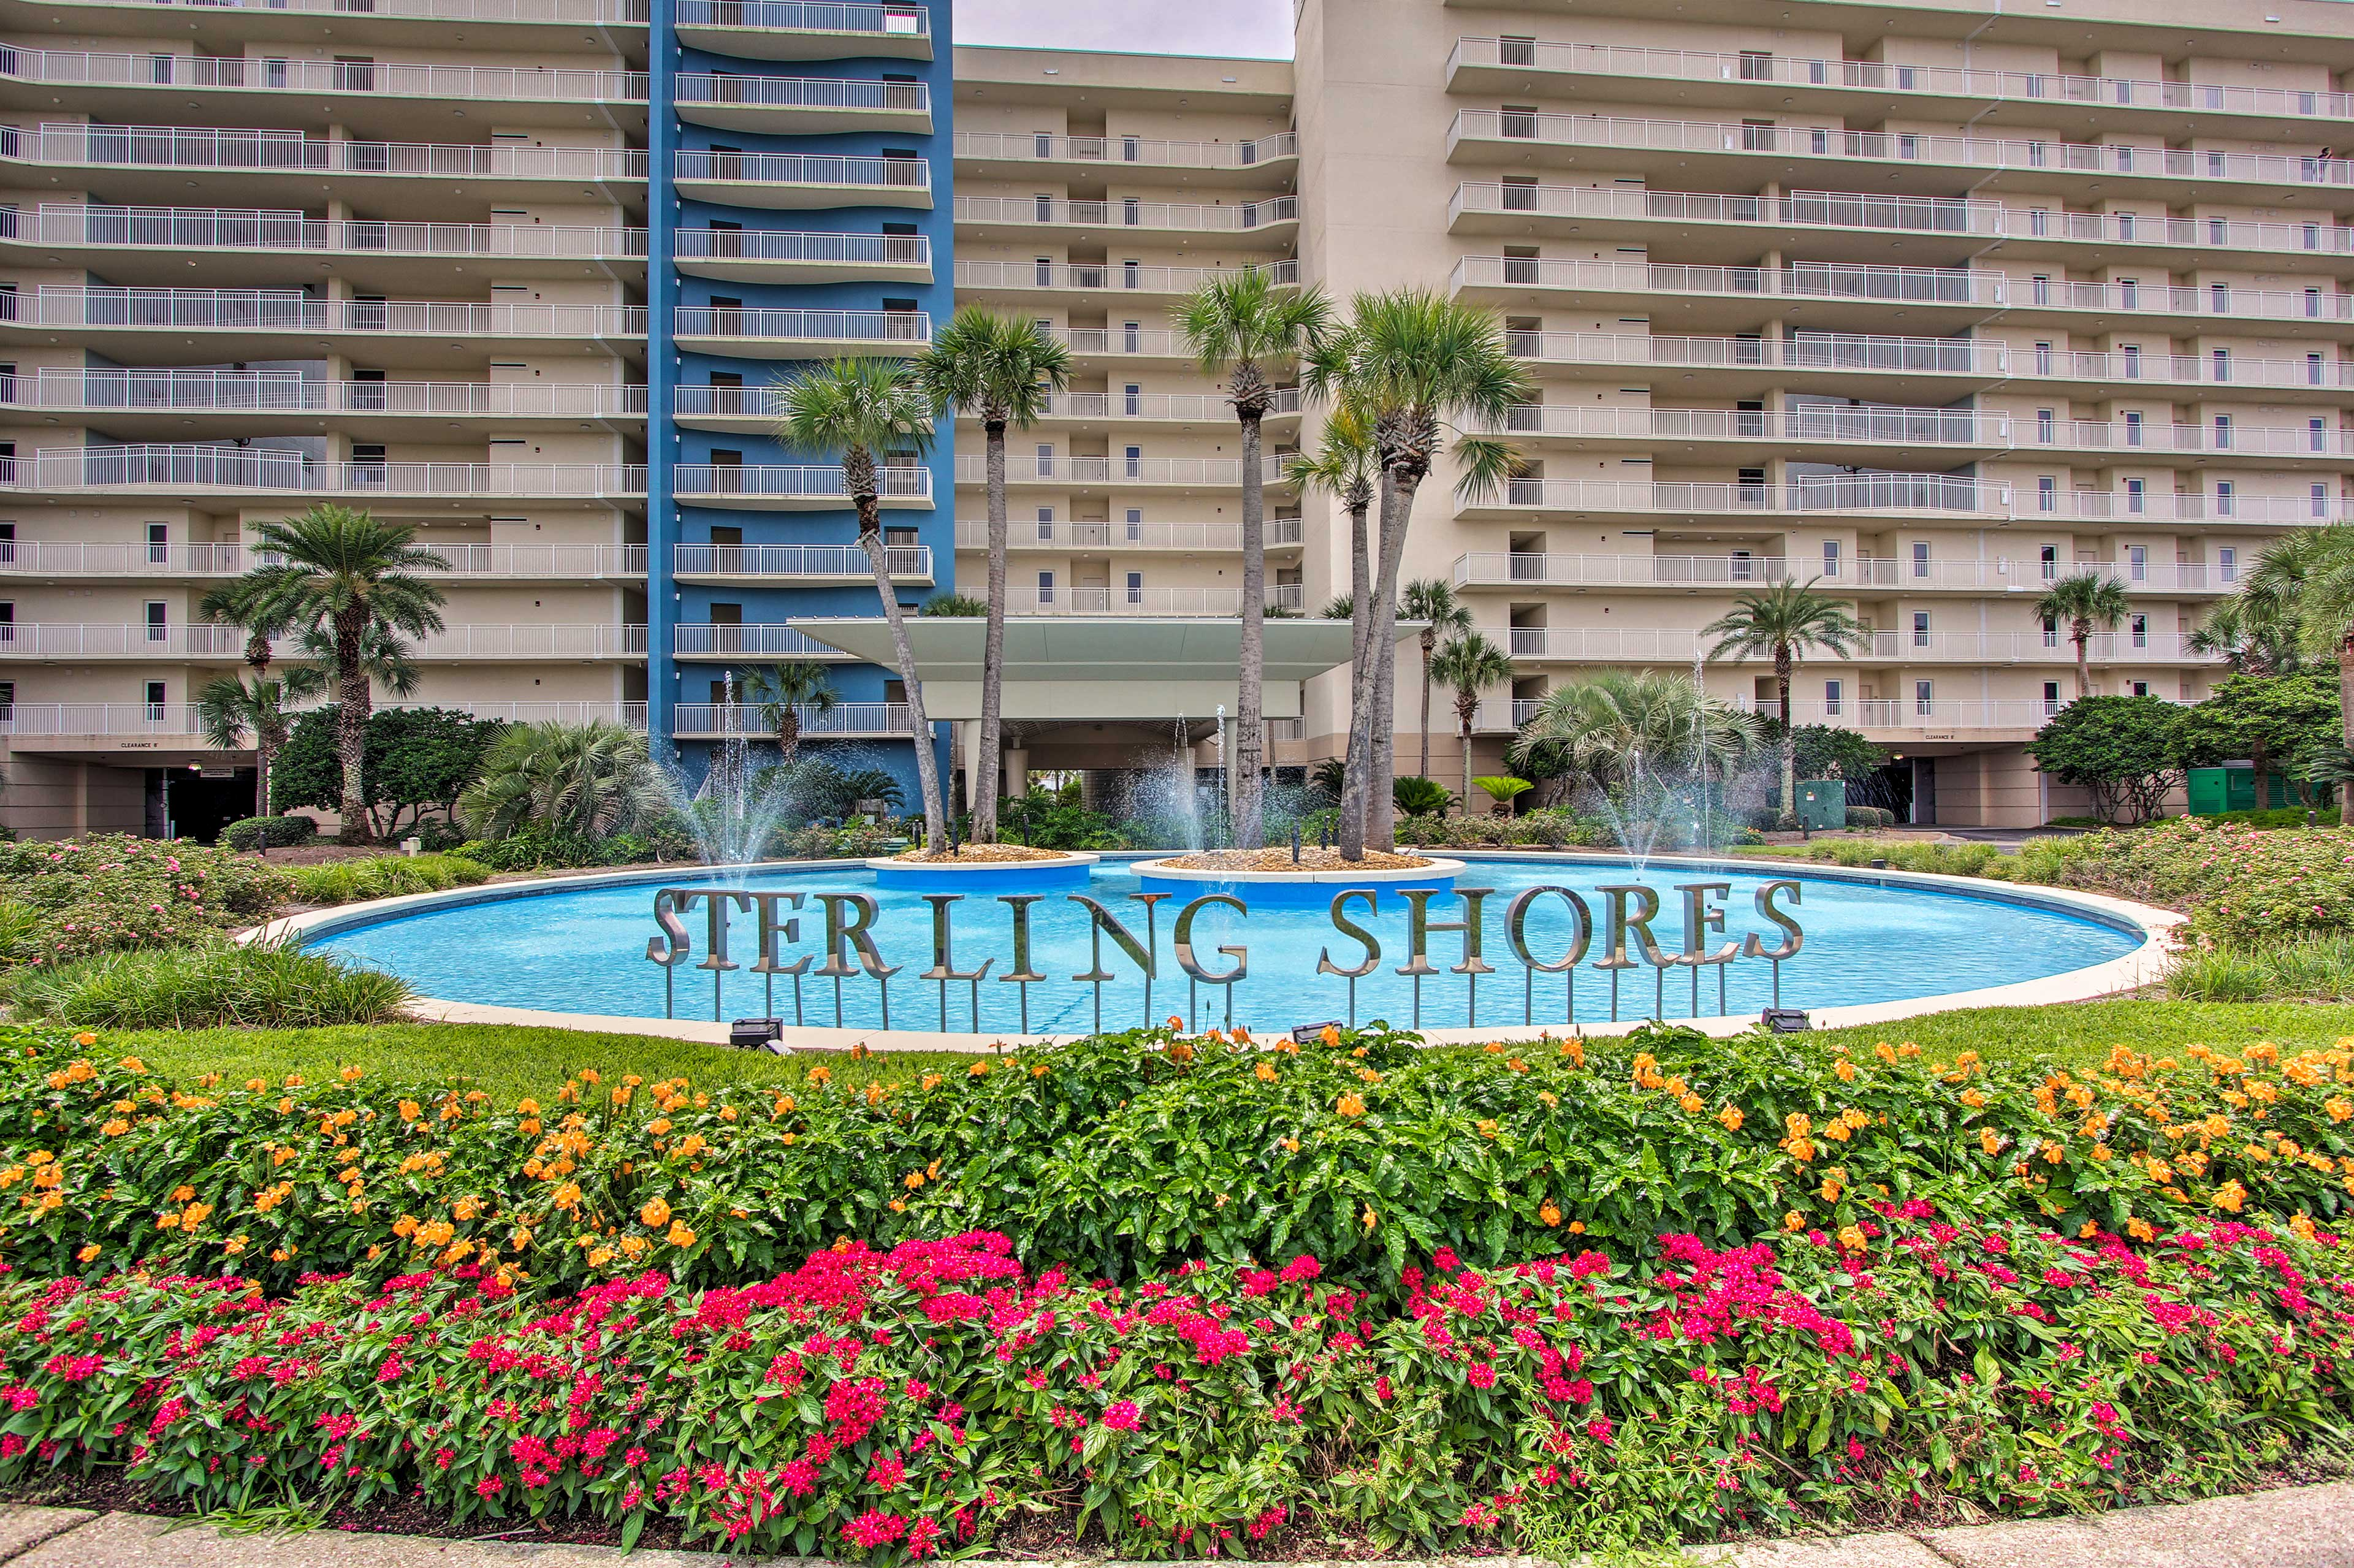 The Sterling Shores community has all of the amenities you could need!